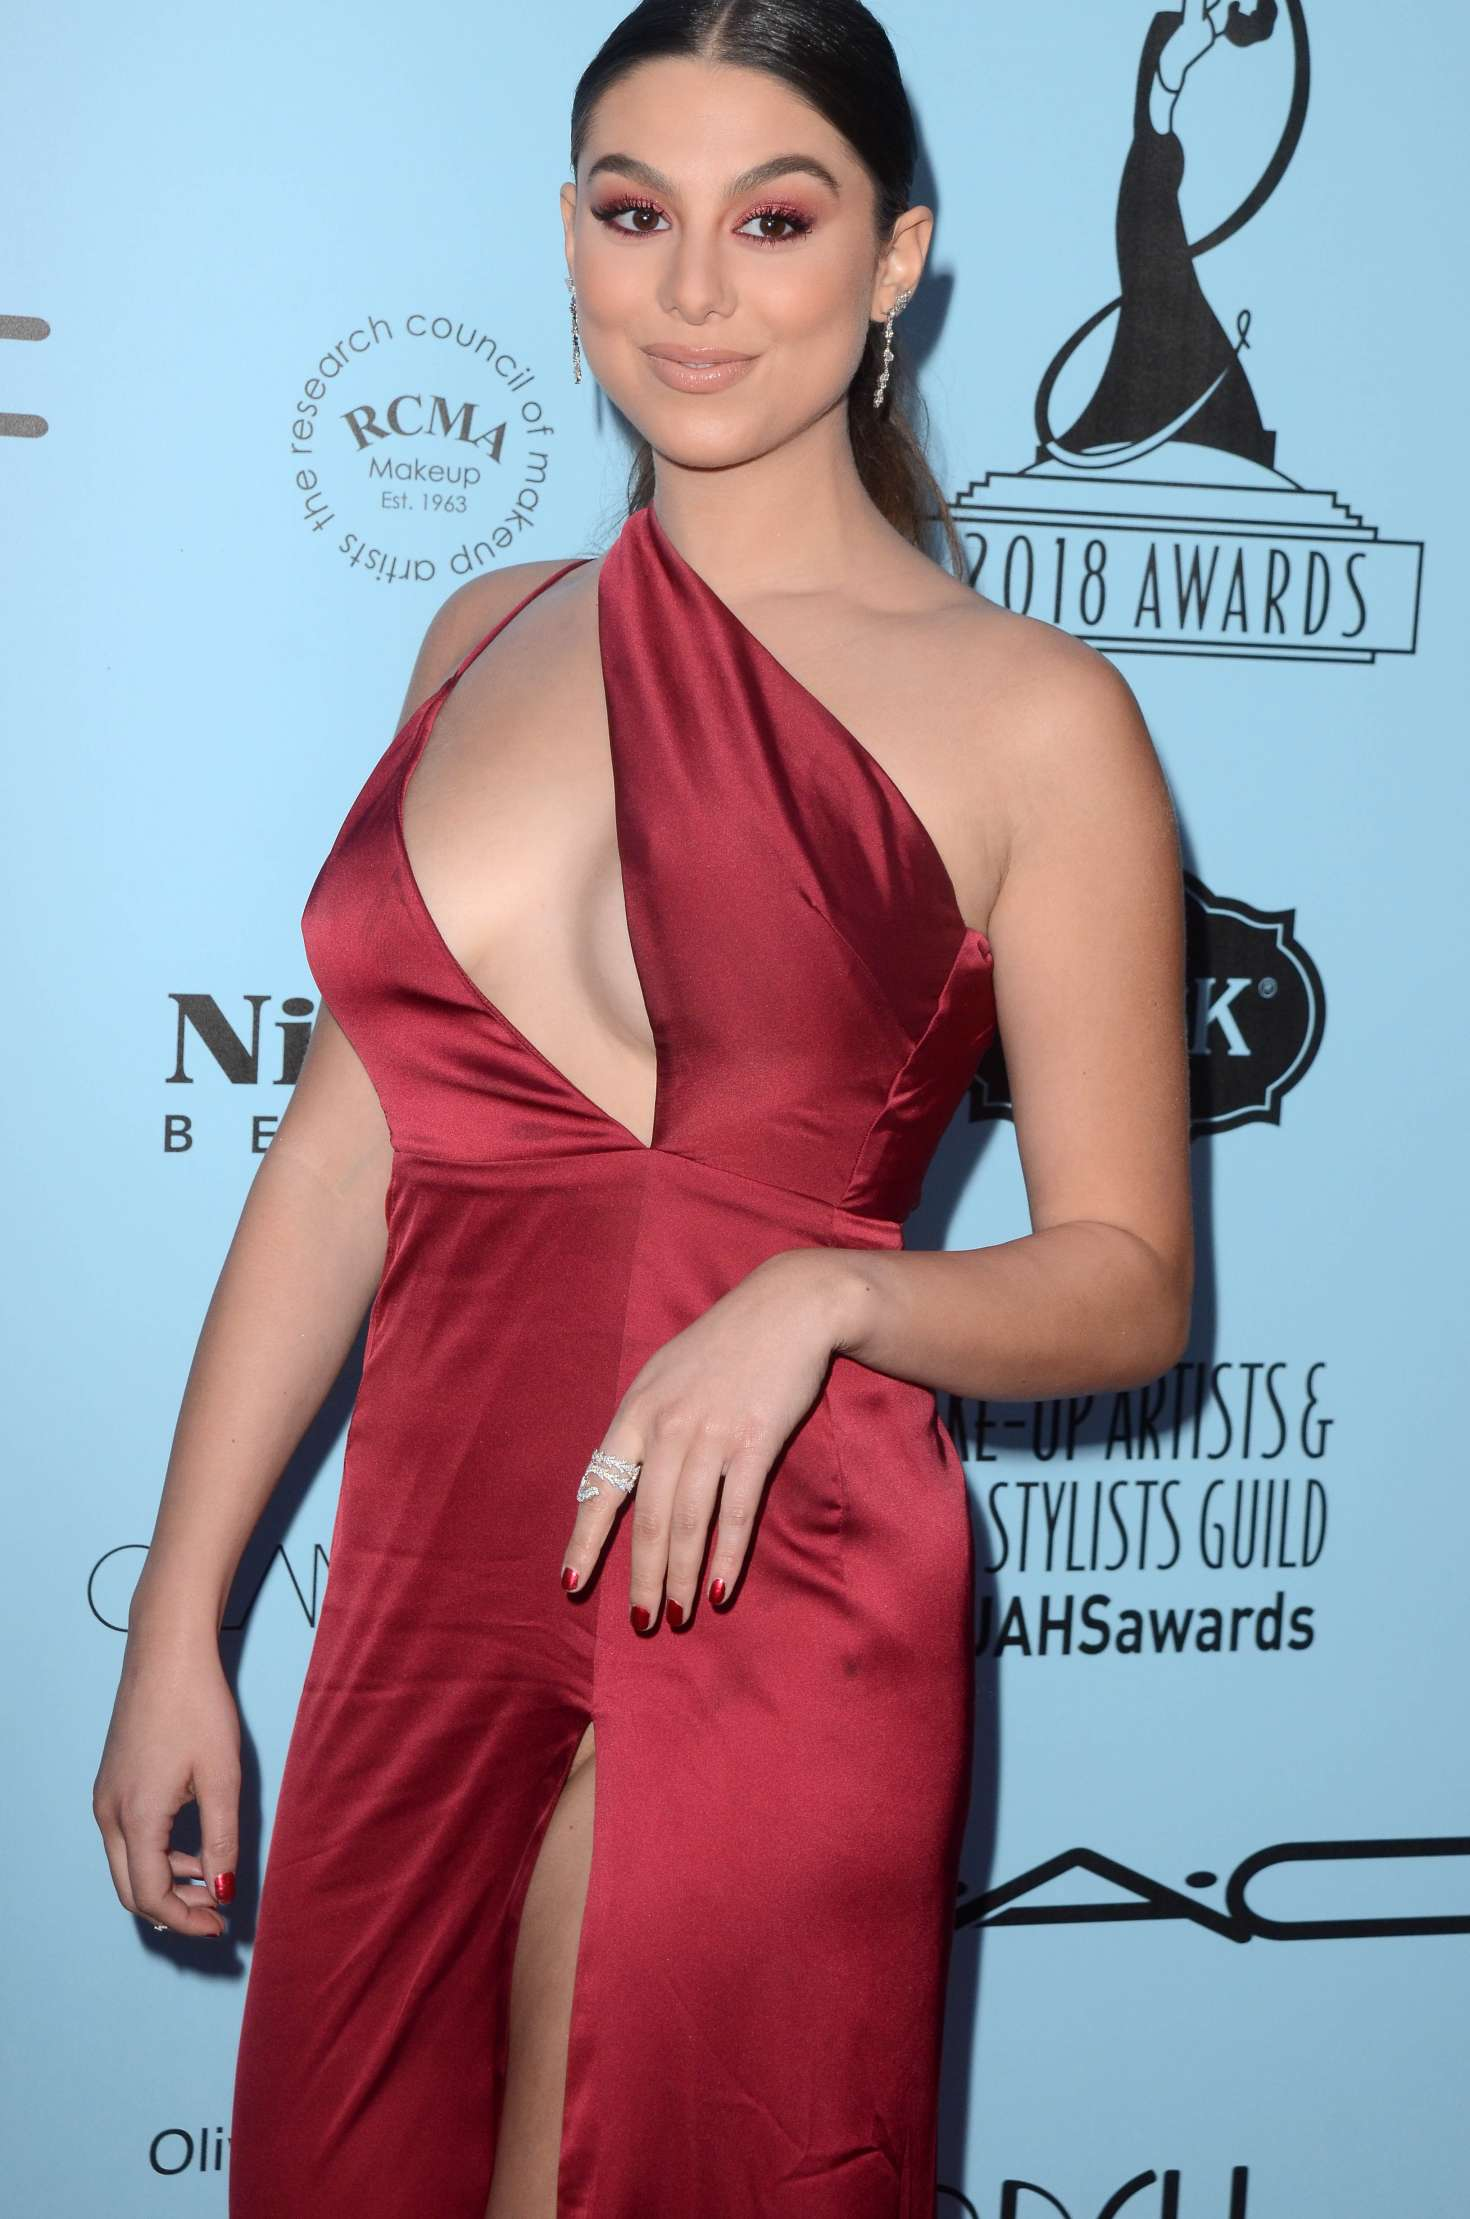 kira-kosarin-panty-upskirt-at-2018-make-up-artists-and-hair-stylists-guild-awards-in-la-1458